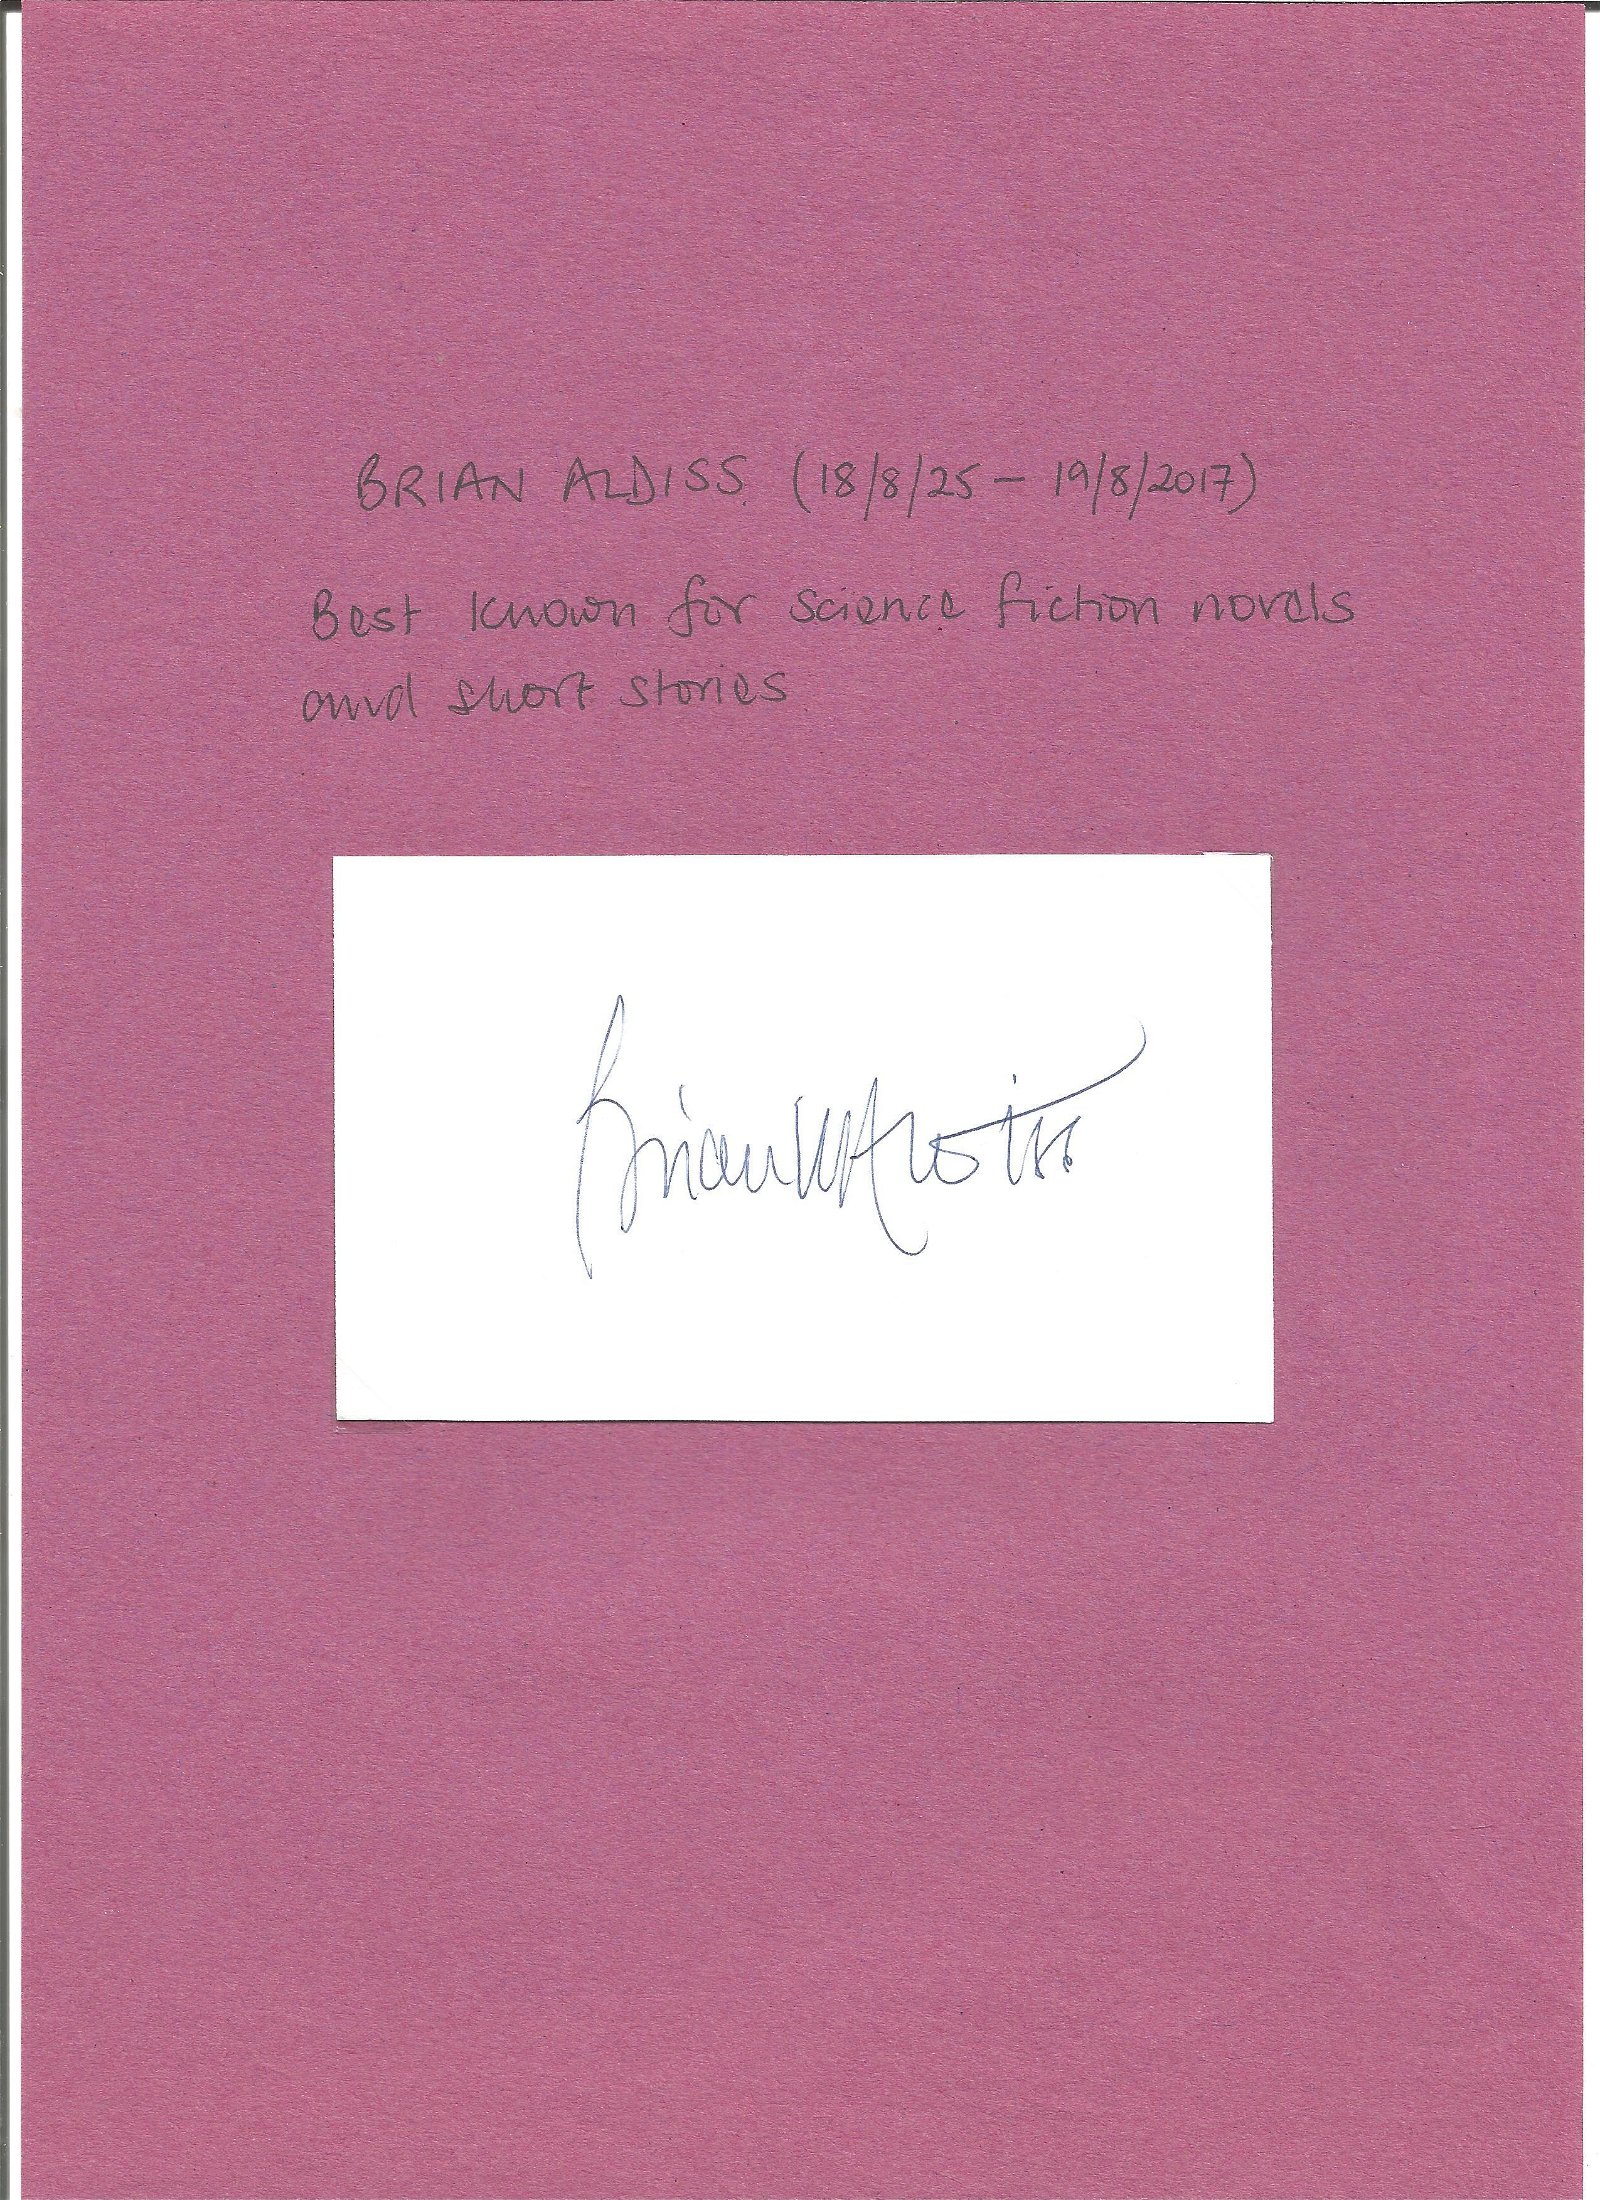 Brian Aldiss signed white card. Good Condition. All